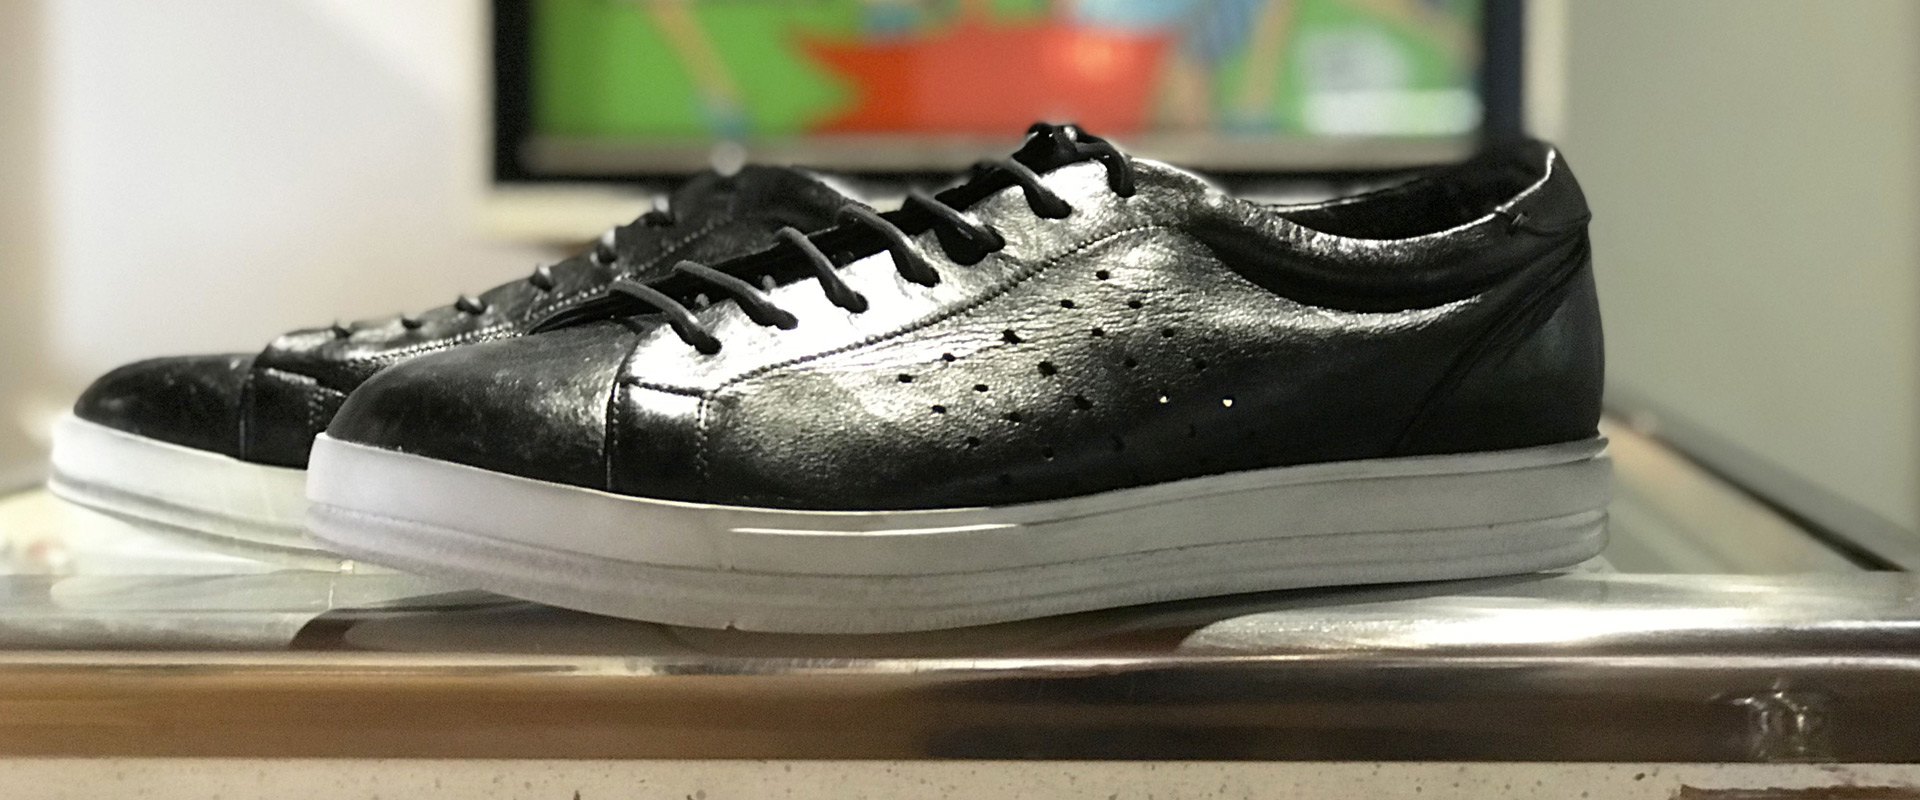 Washed Capsule collection Sneaker Brando